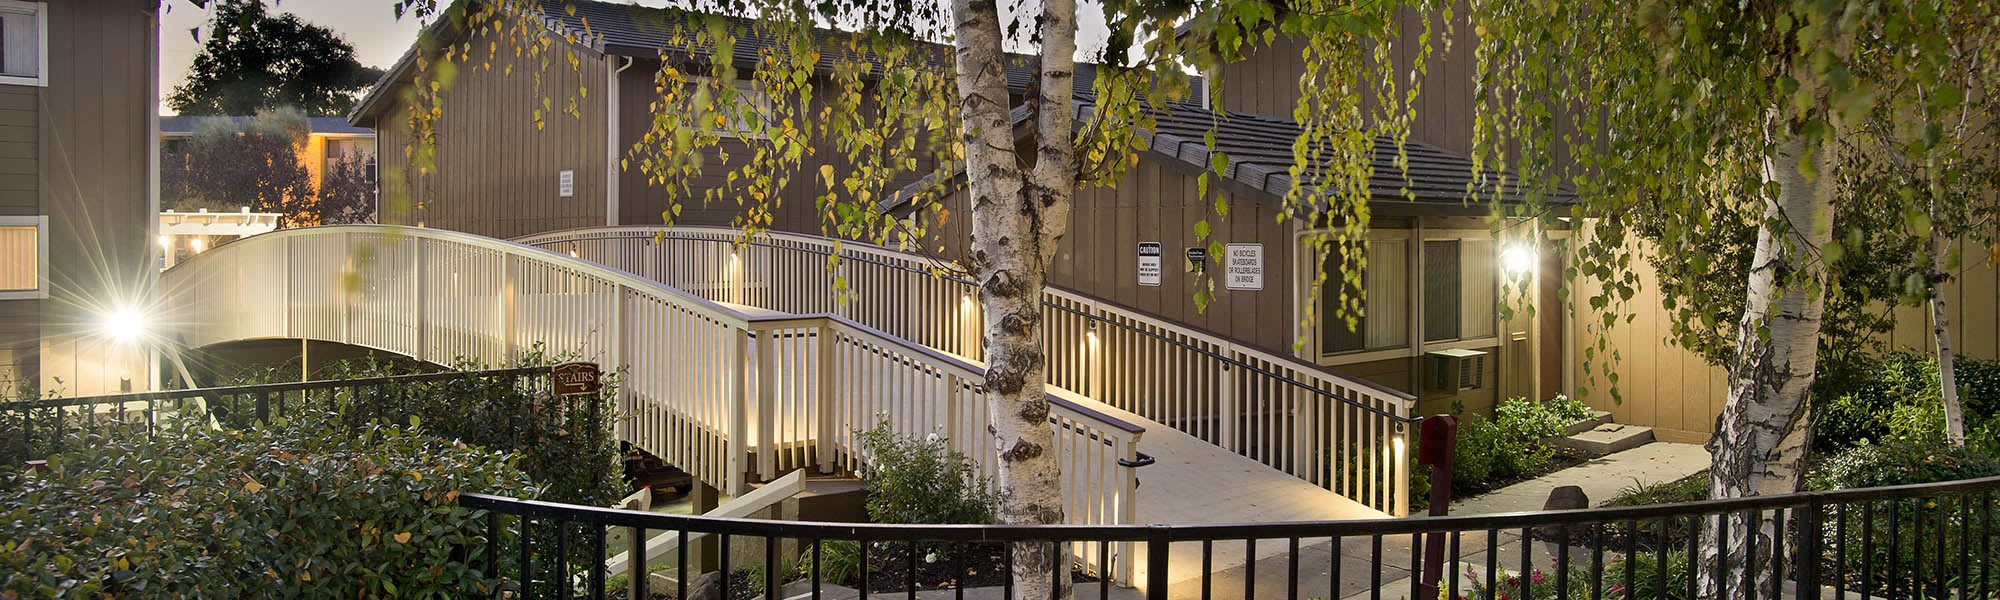 Learn about our neighborhood at Shadow Oaks Apartment Homes in Cupertino, CA on our website